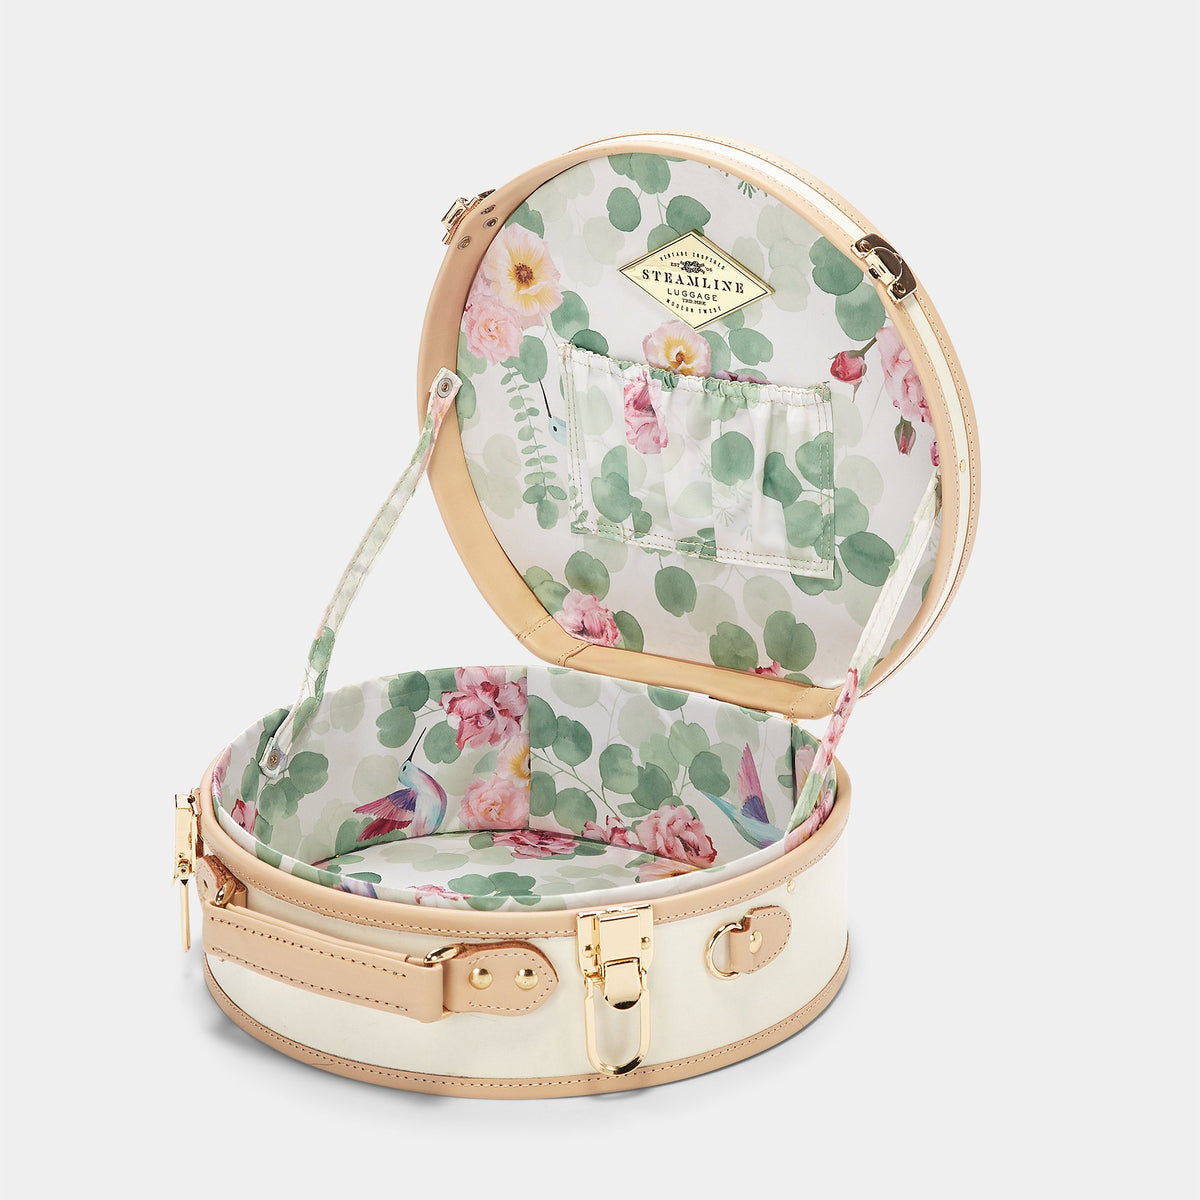 The Sweetheart Hatbox Small in White - Hat Box Luggage - Interior Front